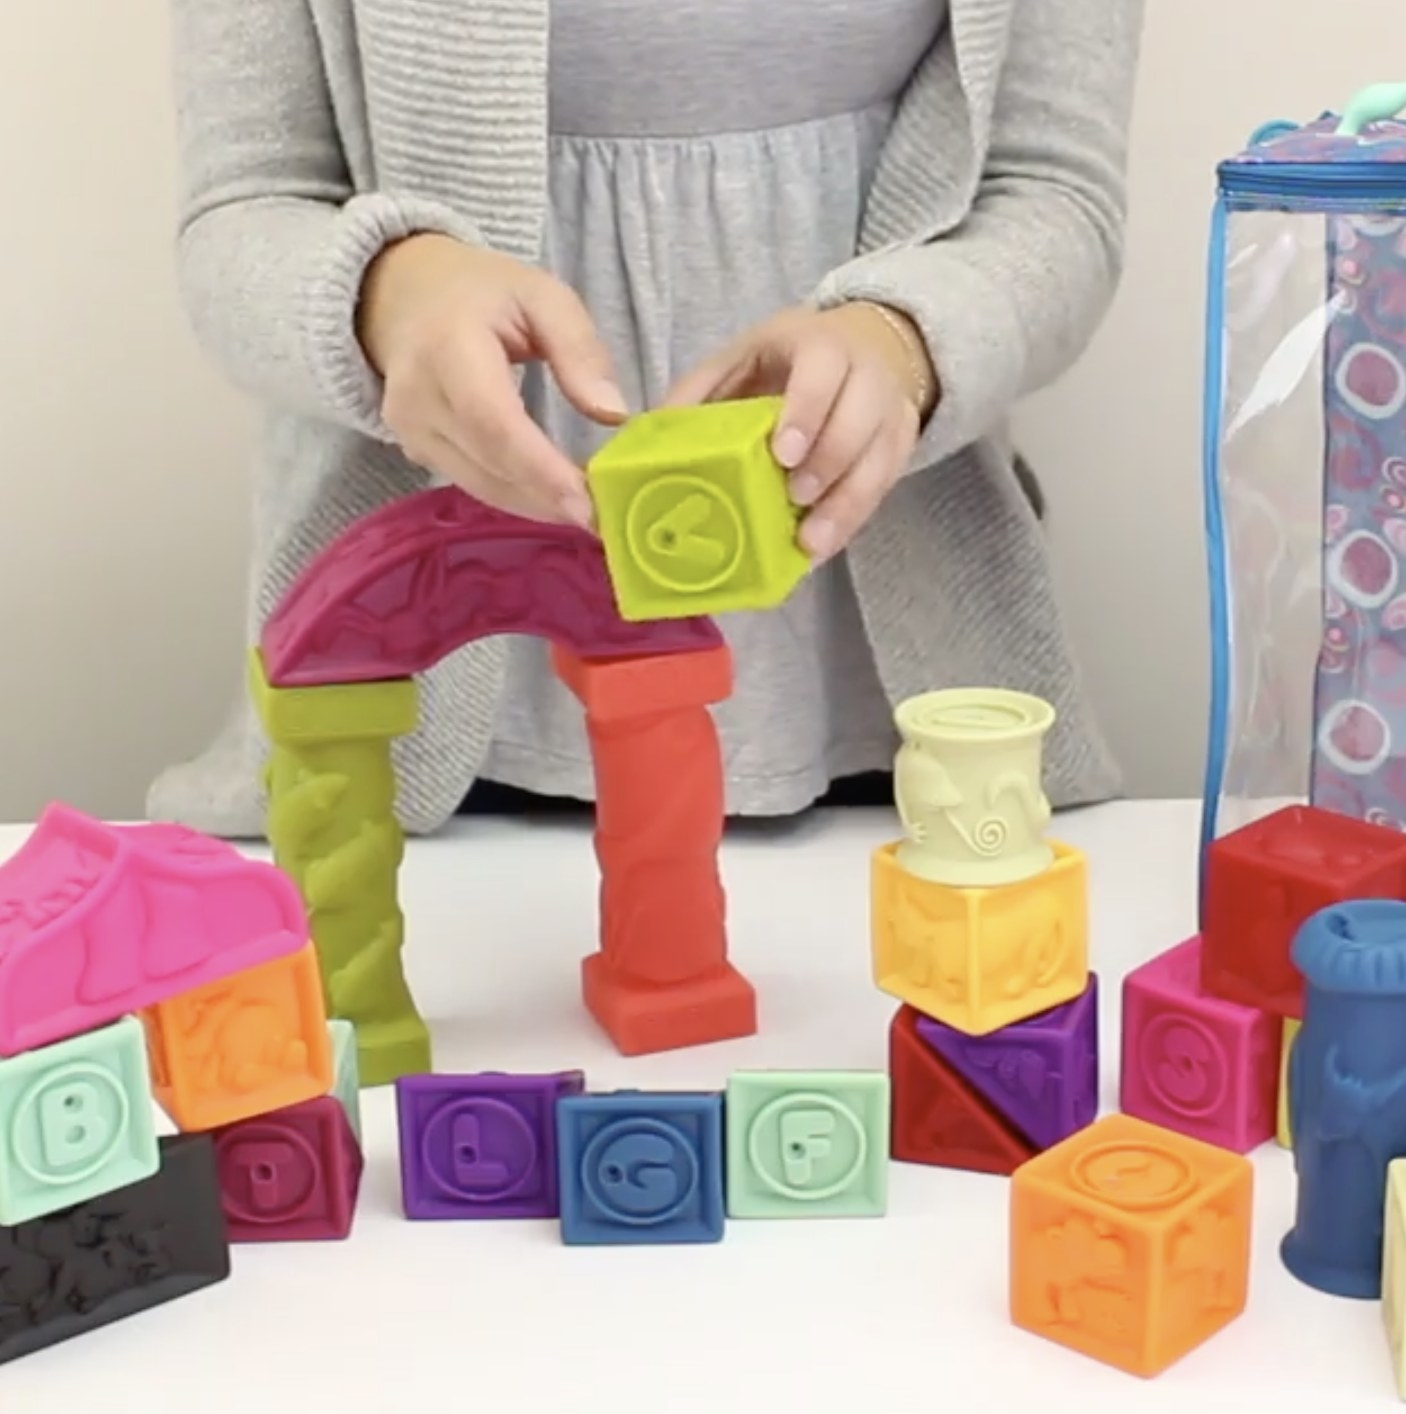 A person holding baby blocks